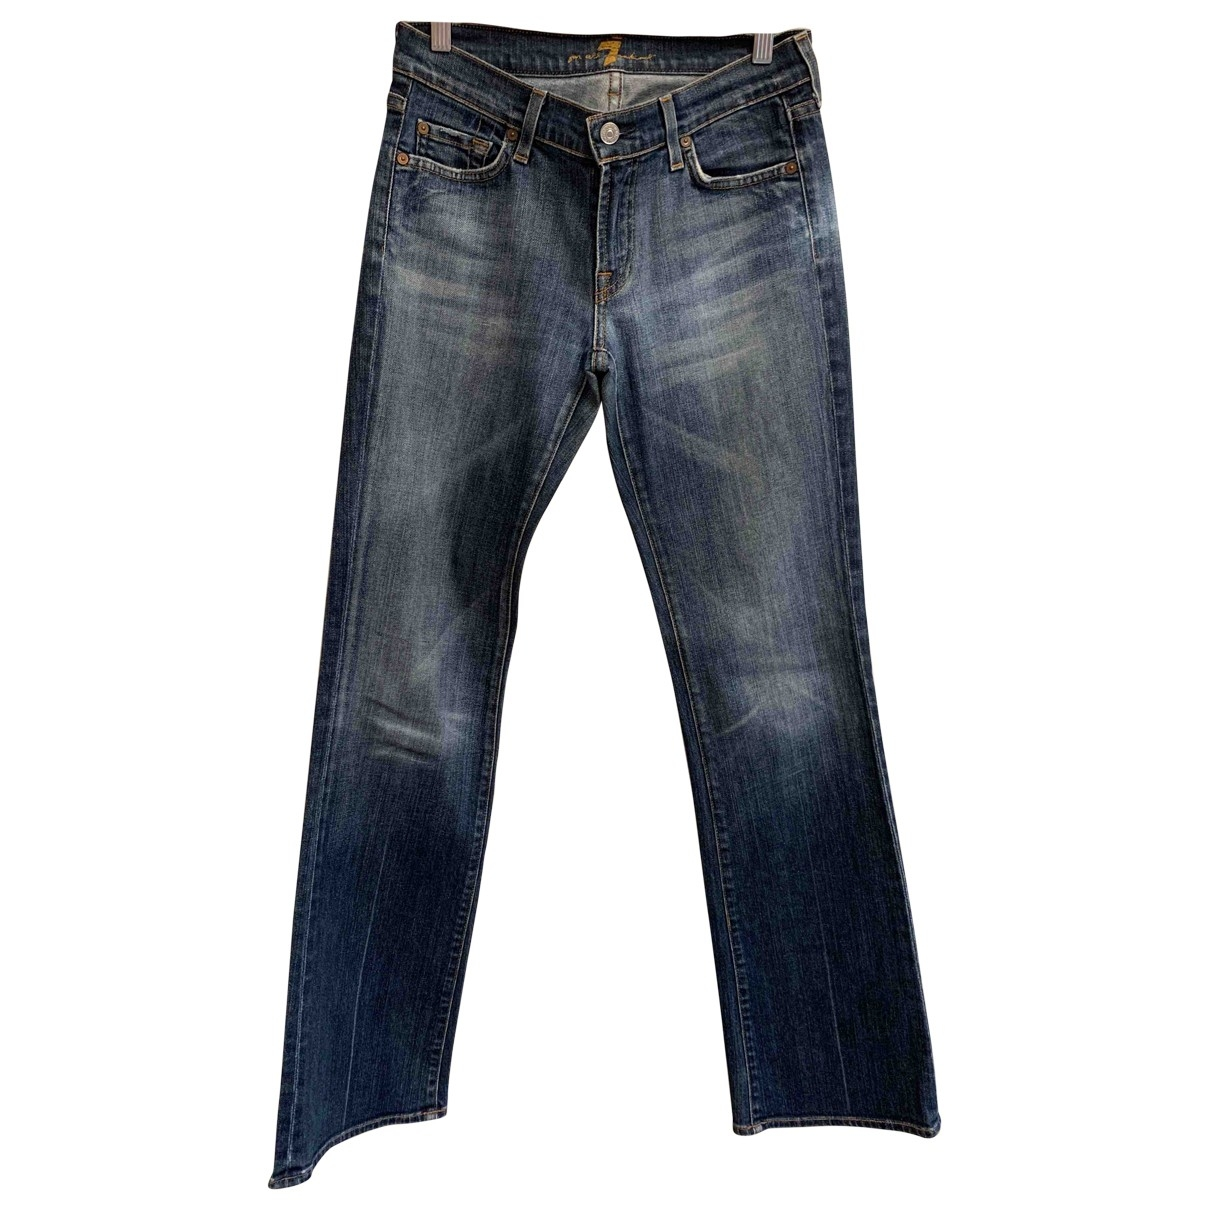 7 For All Mankind \N Blue Denim - Jeans Jeans for Women 28 US